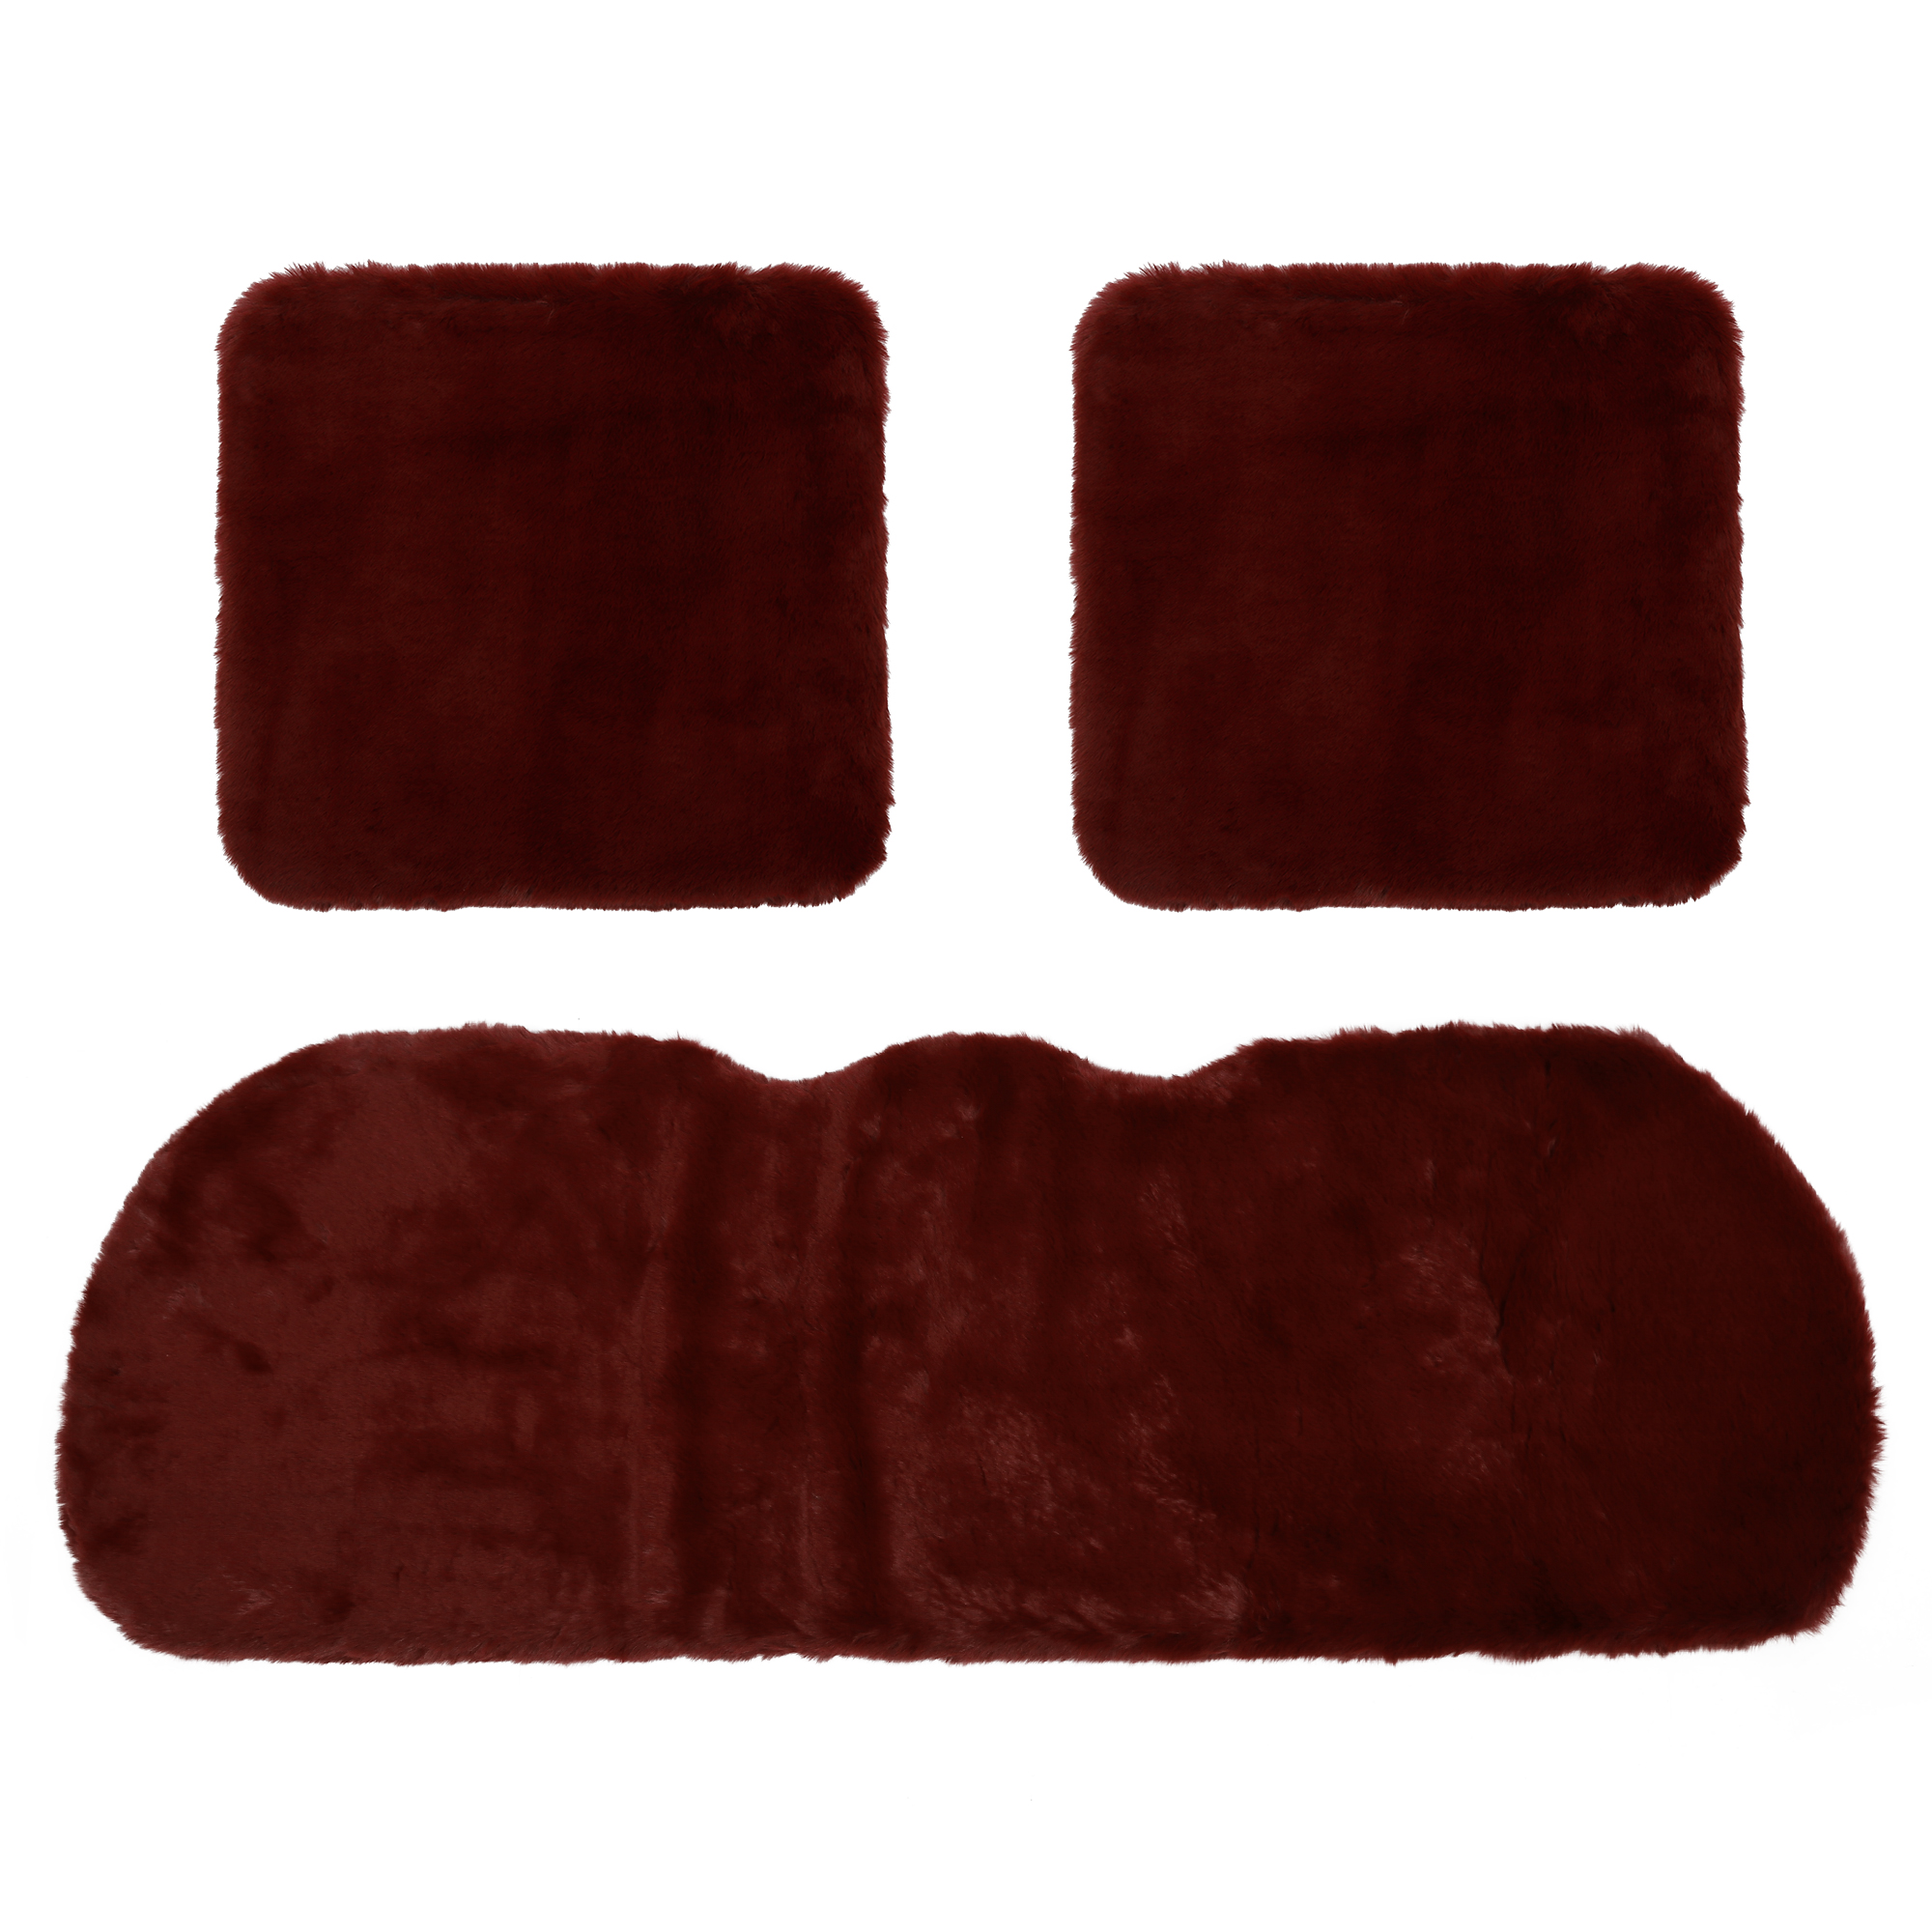 3pcs Universal Soft Faux Plush Cushion Warm Interior Seat Cover Pad for Auto Red